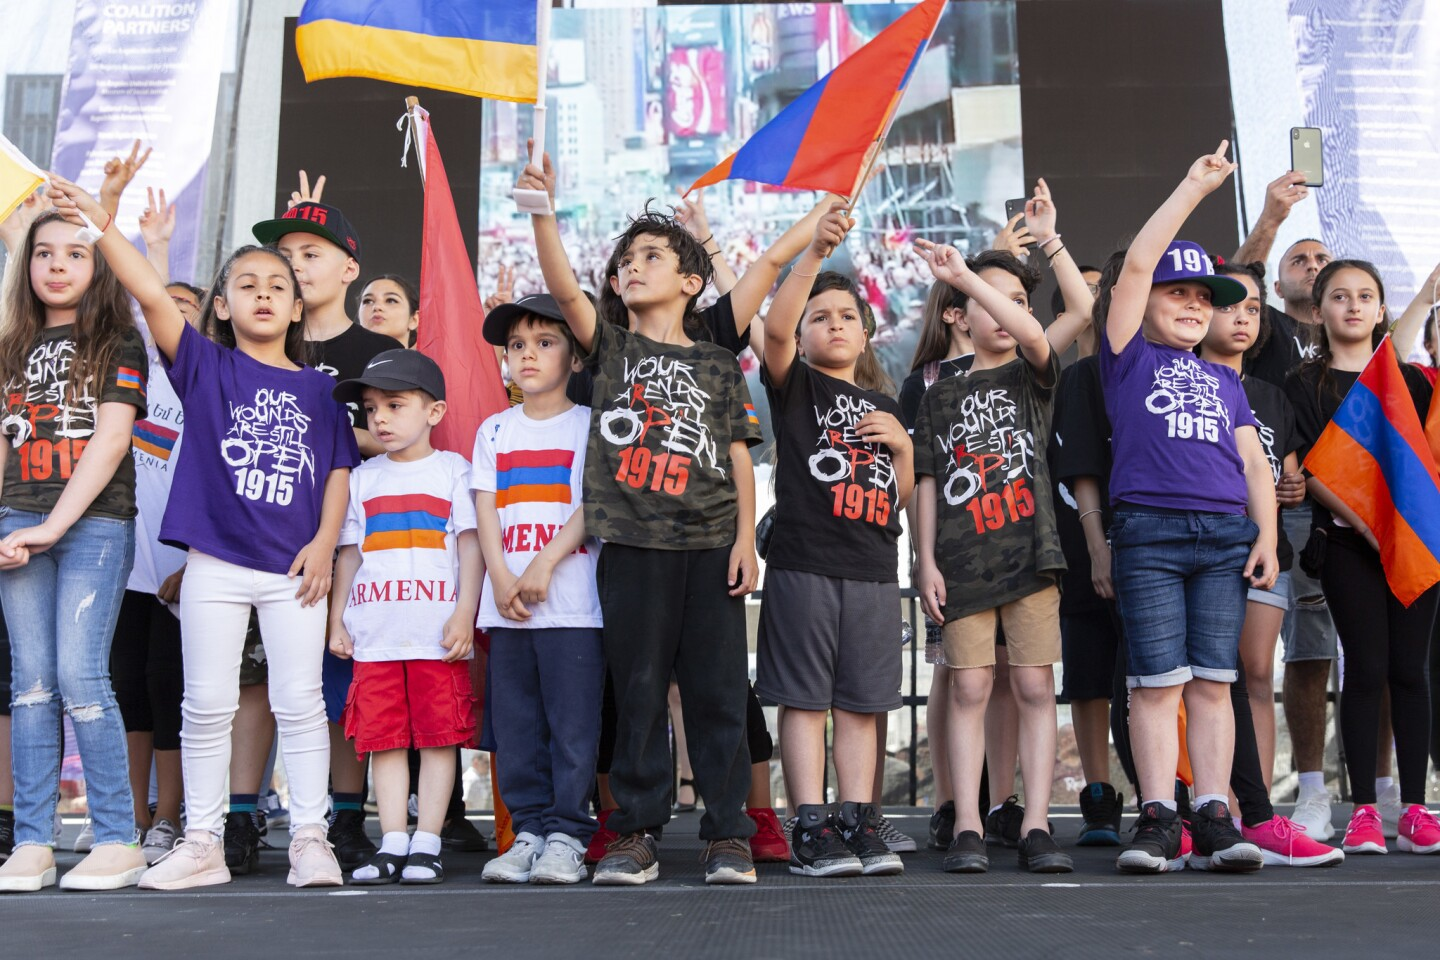 Armenian Genocide Remembrance March